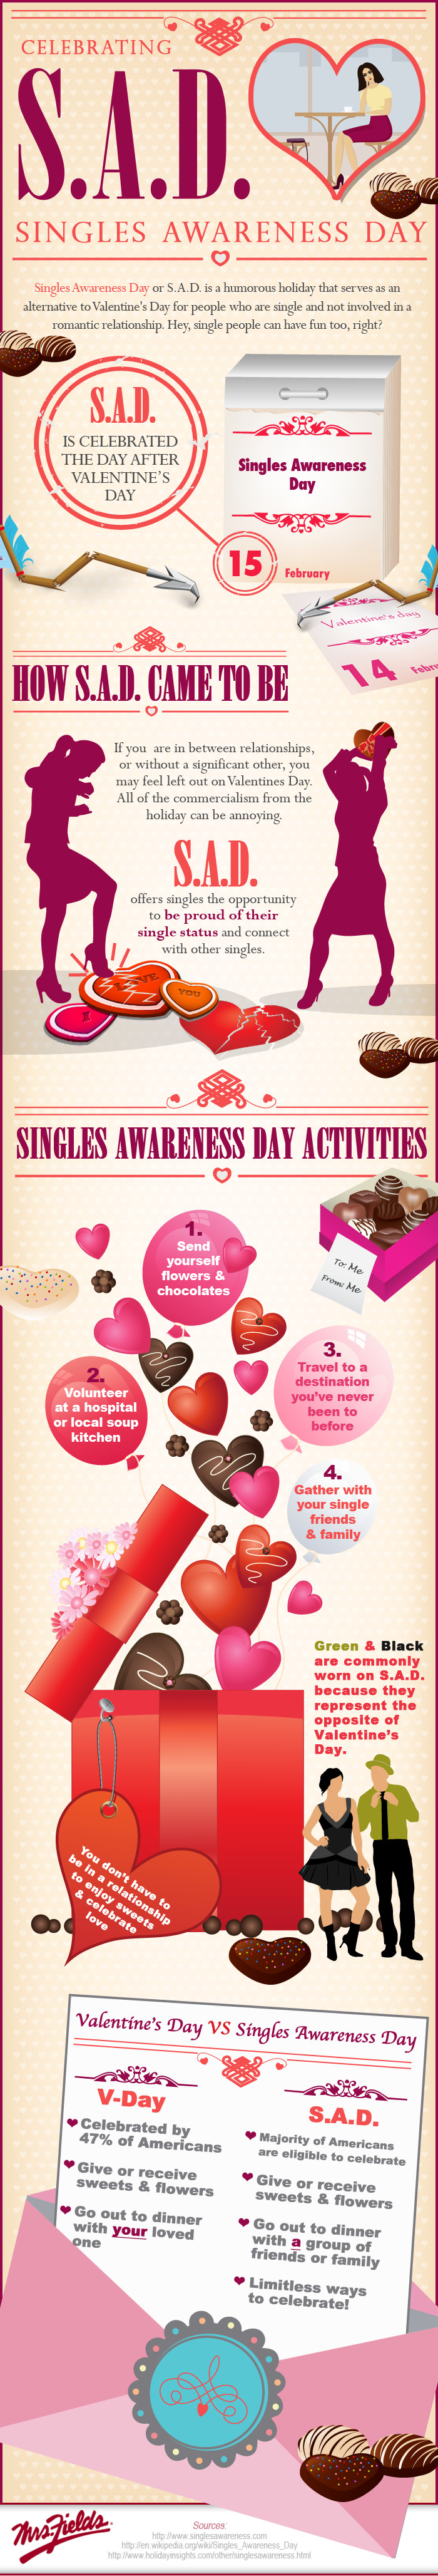 Some Thoughts on Celebrating Singles Awareness Day